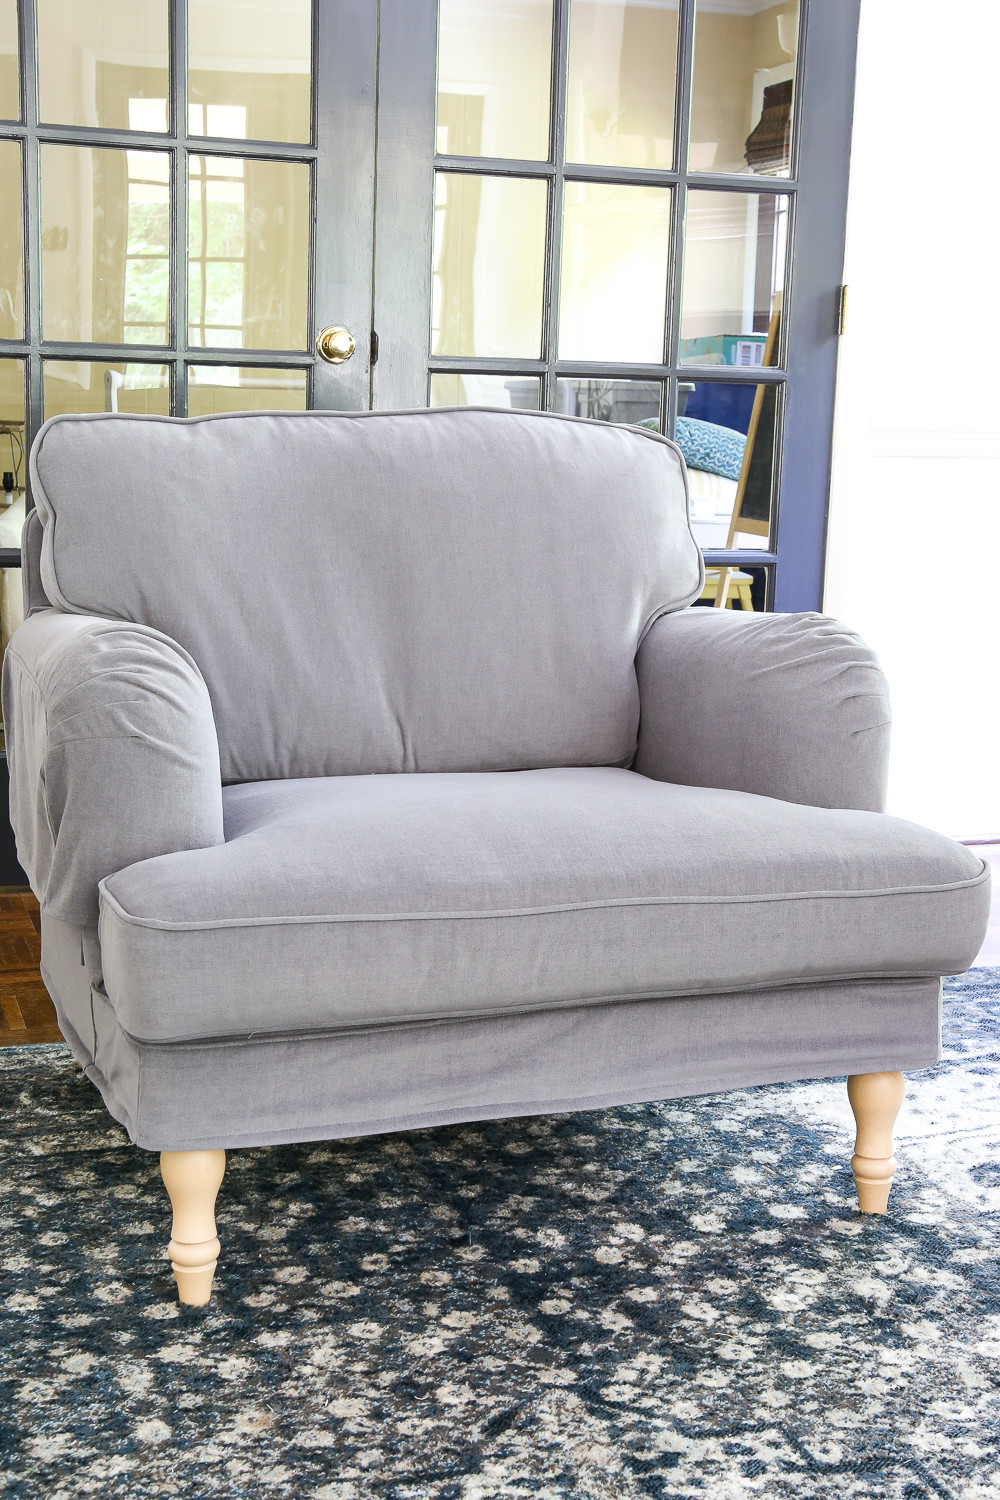 Ikea Sofa  IKEA s New Sofa and Chairs and How to Keep Them Clean